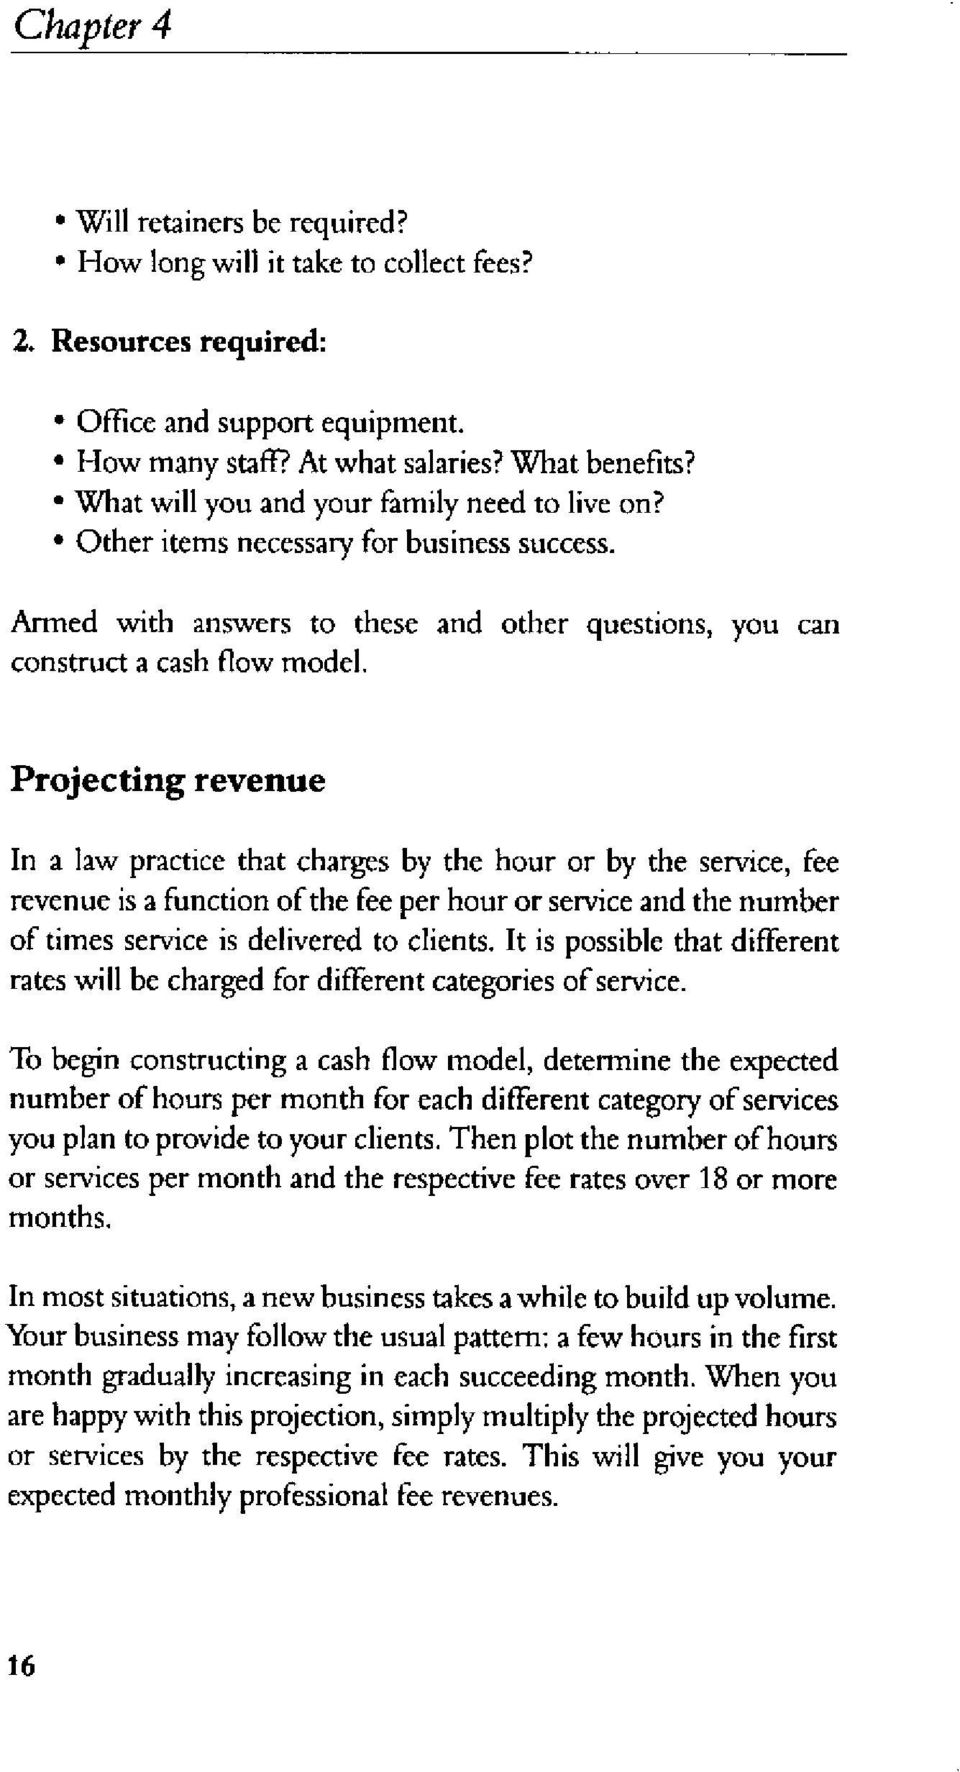 Projecting revenue In a law practice that charges by the hour or by the service, fee revenue is a function ofthe fee per hour or service and the number of times service is delivered to clients.